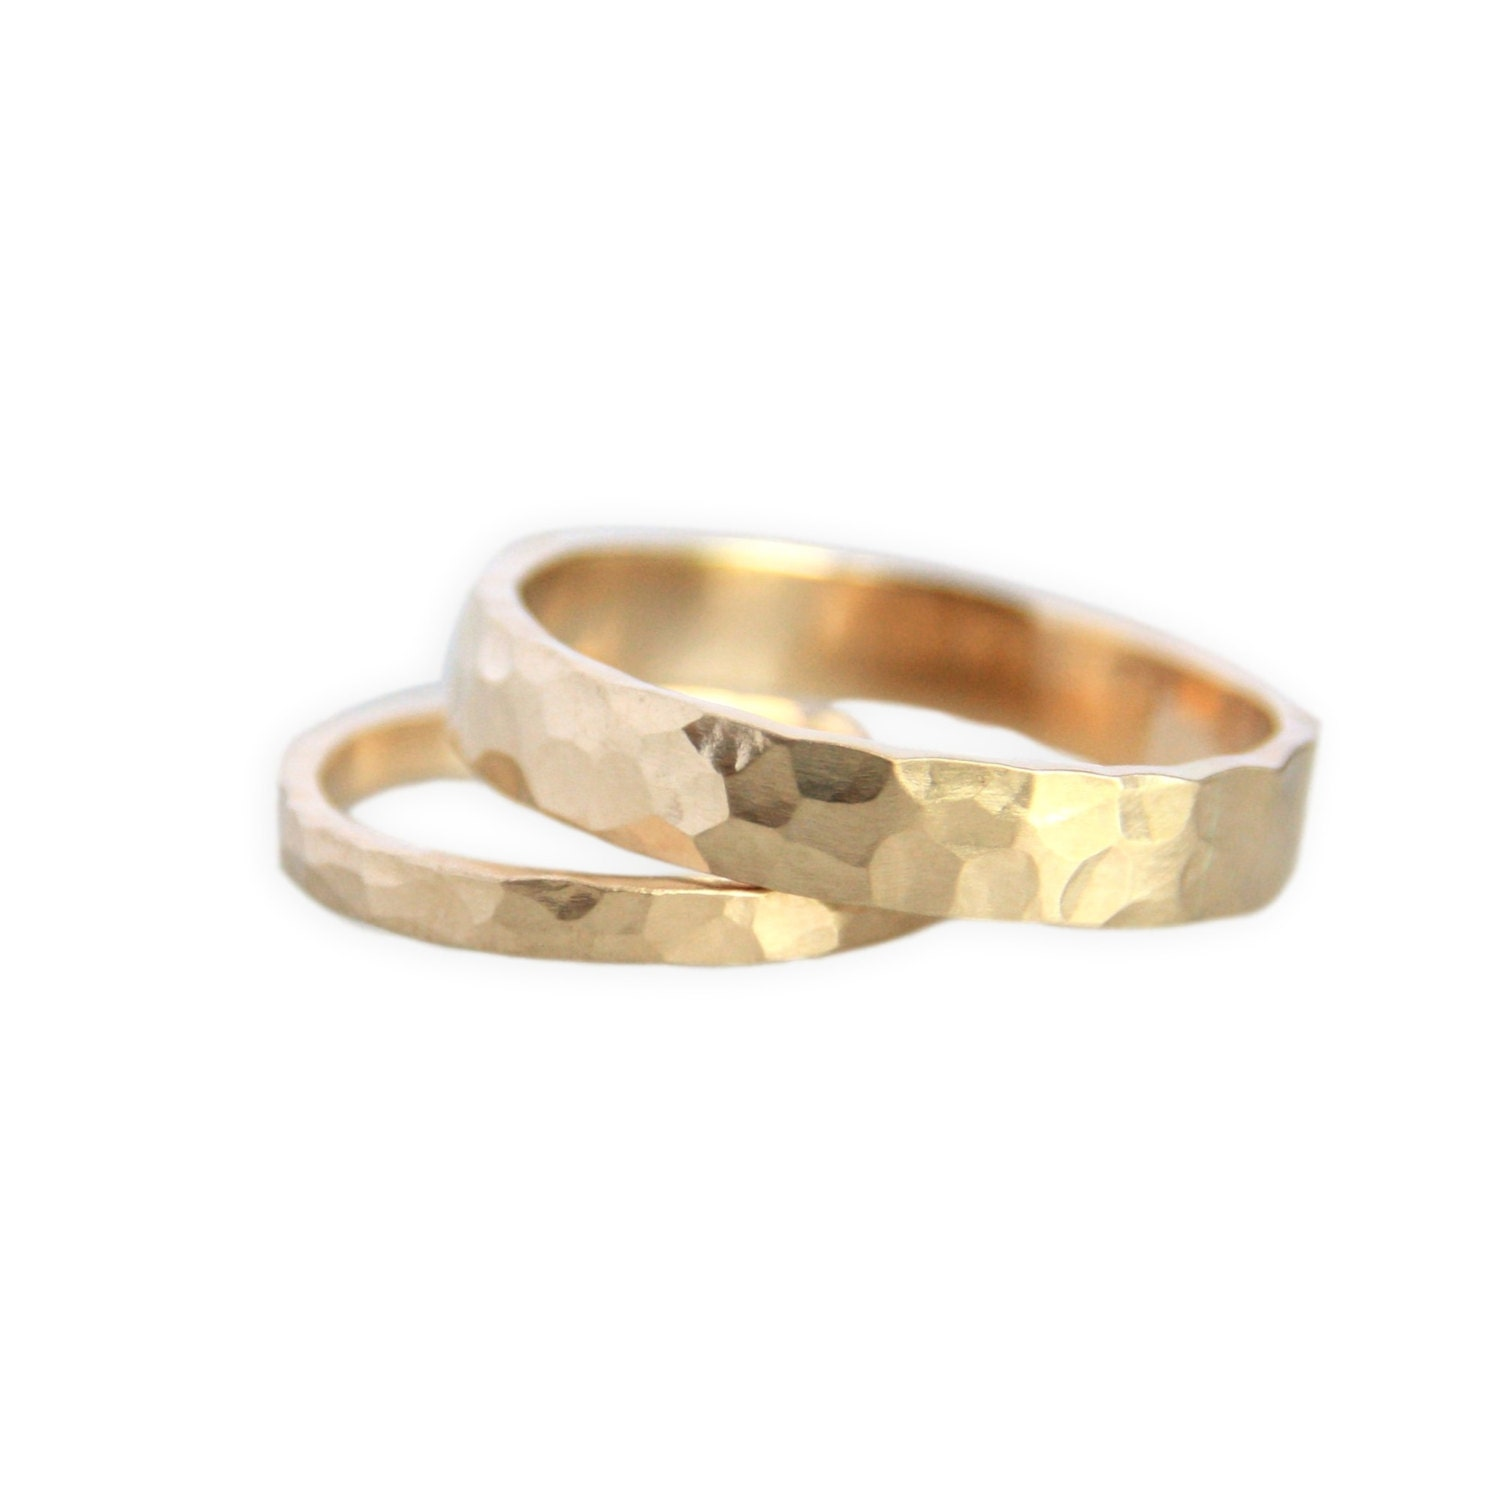 Gold Wedding Ring Set Handmade 14k Gold By TorchfireStudio